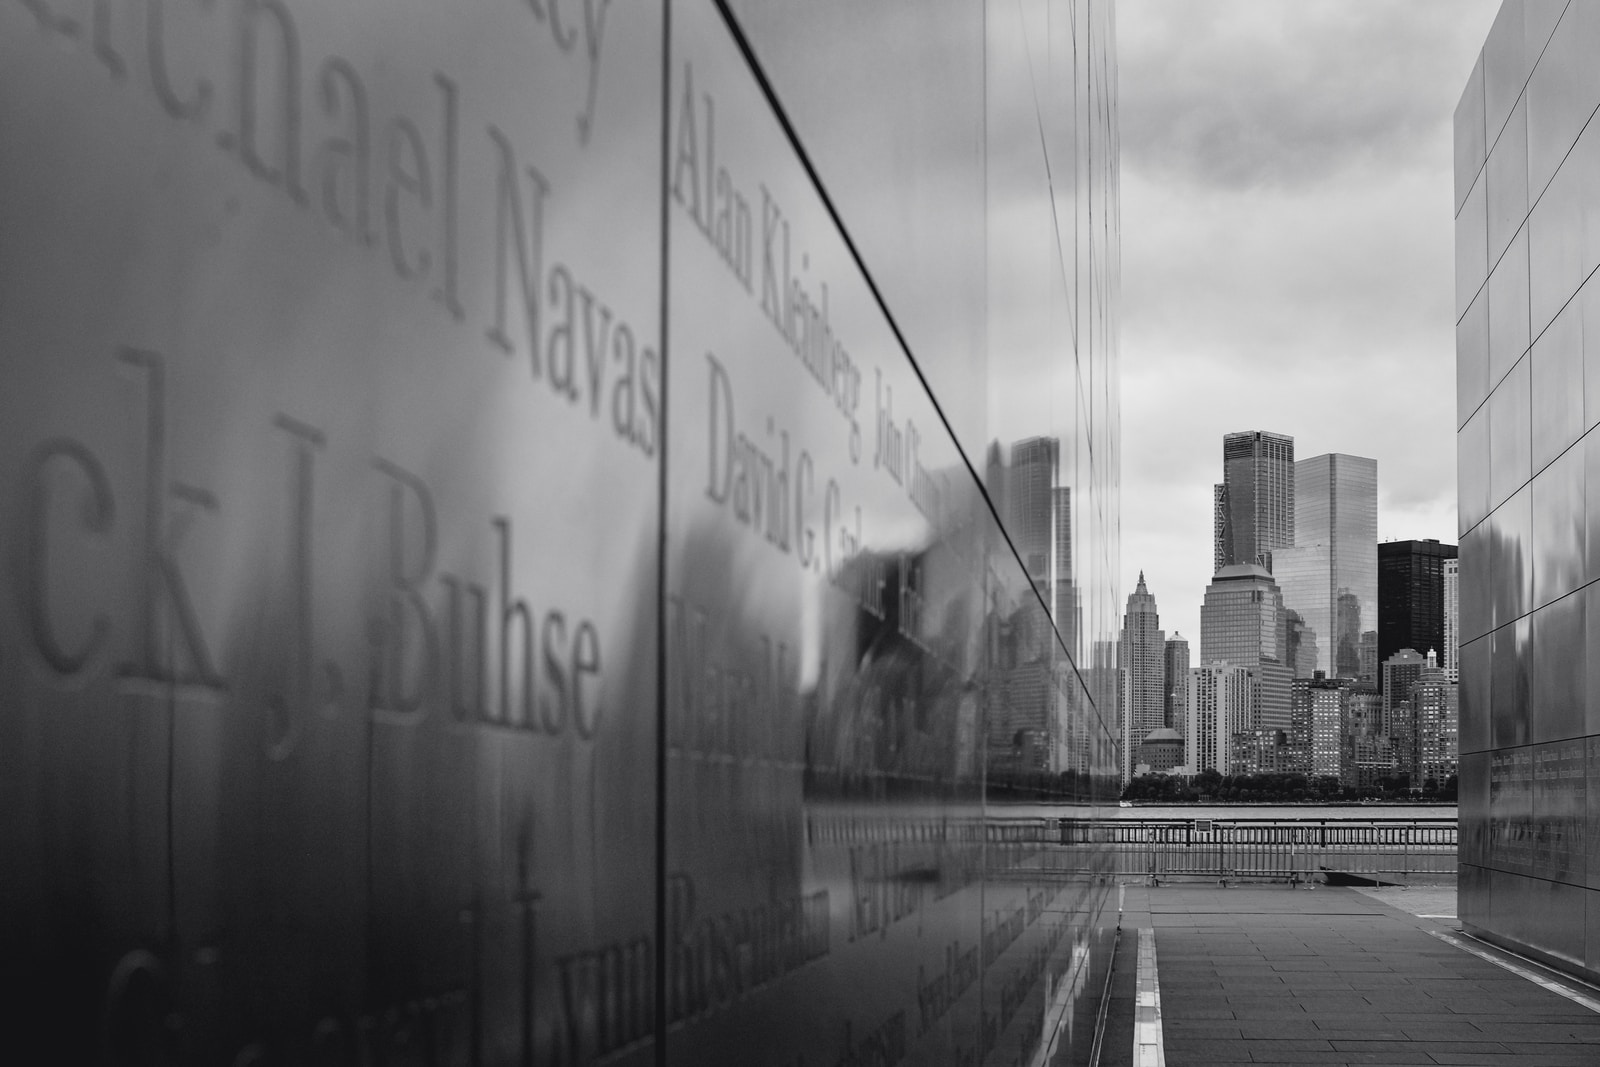 grayscale photo of city buildings